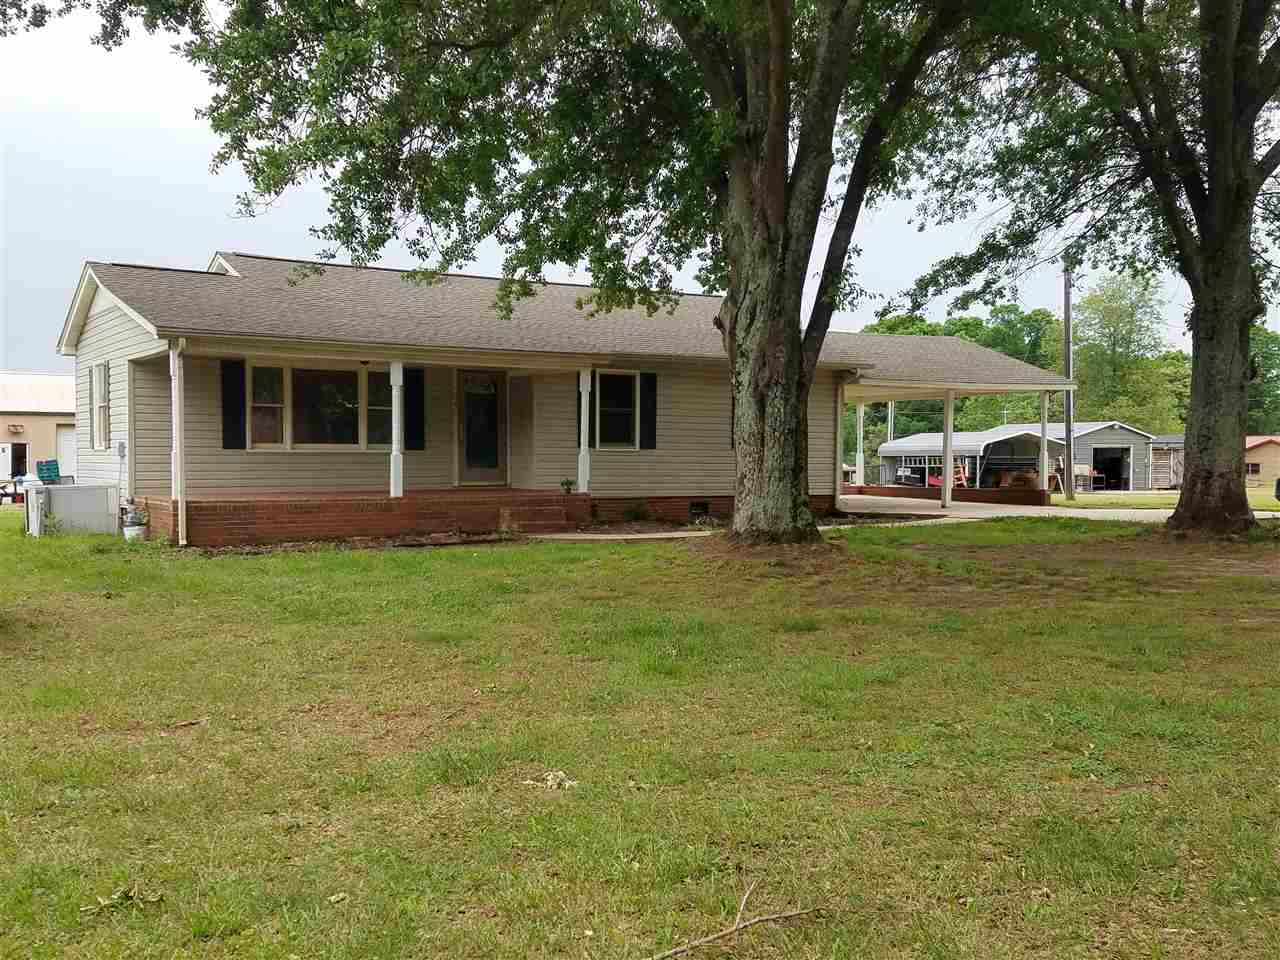 1037 Old Boiling Springs Rd, Shelby, NC 28152